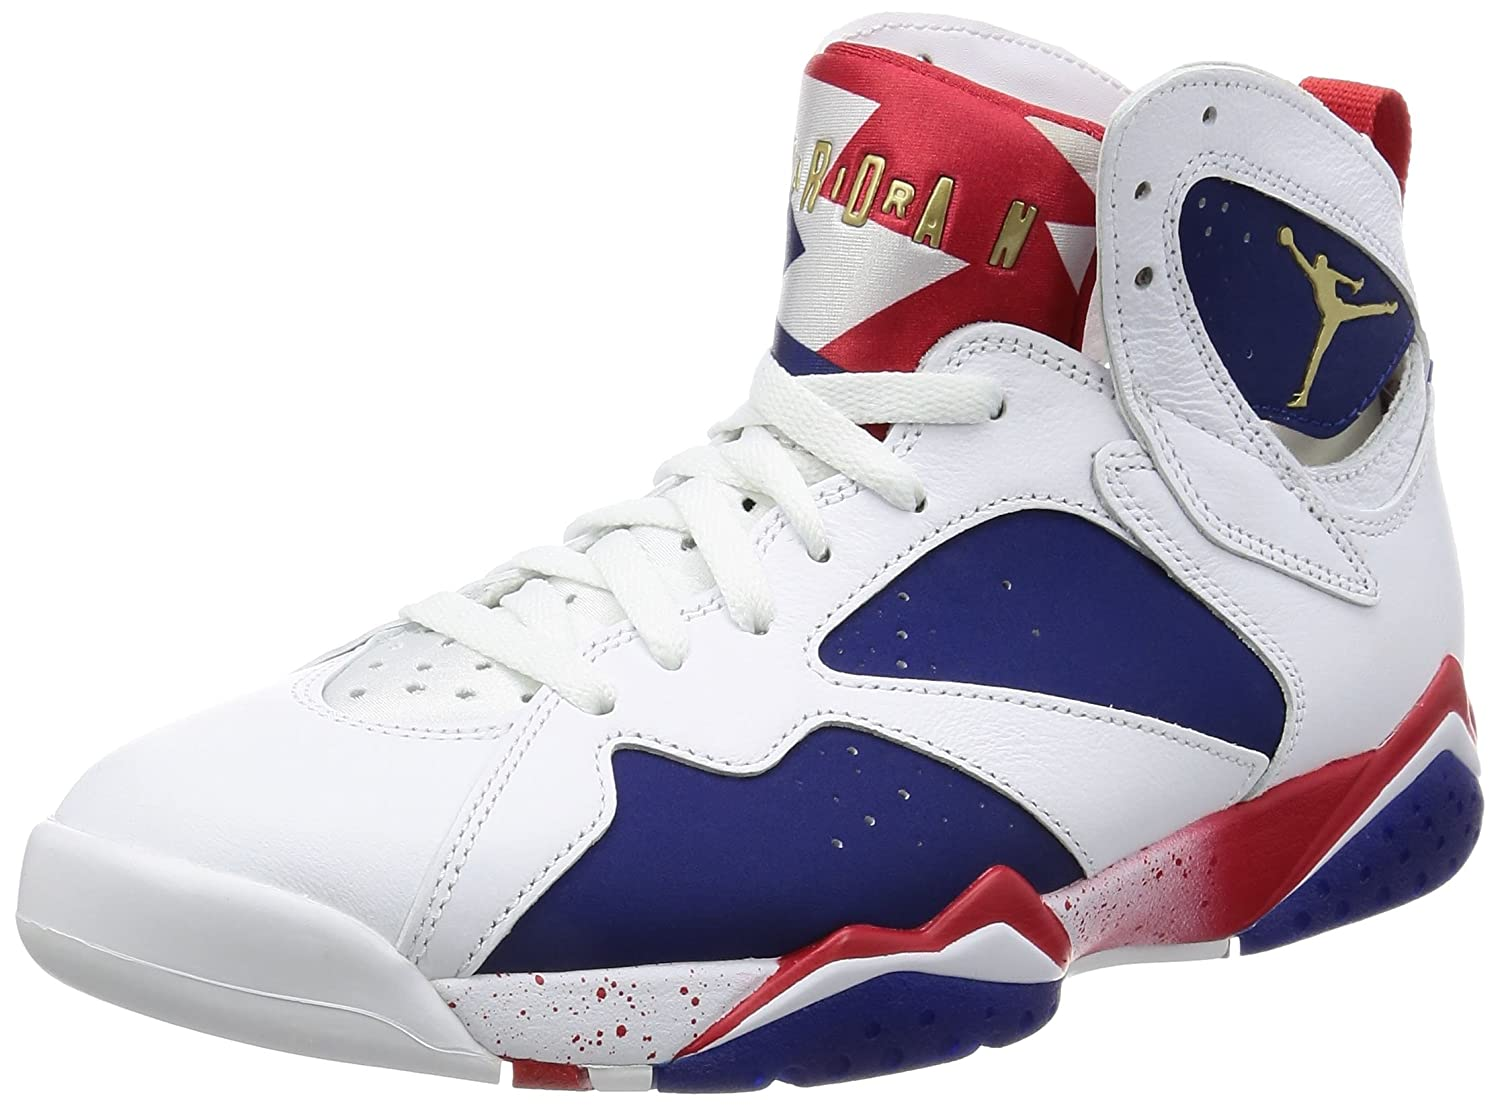 9ebd850a6a5906 Amazon.com  Nike Mens Air Jordan 7 Retro Tinker Alternate White Metallic  Gold-Deep Royal Leather Size 9.5  Jordan  Sports   Outdoors